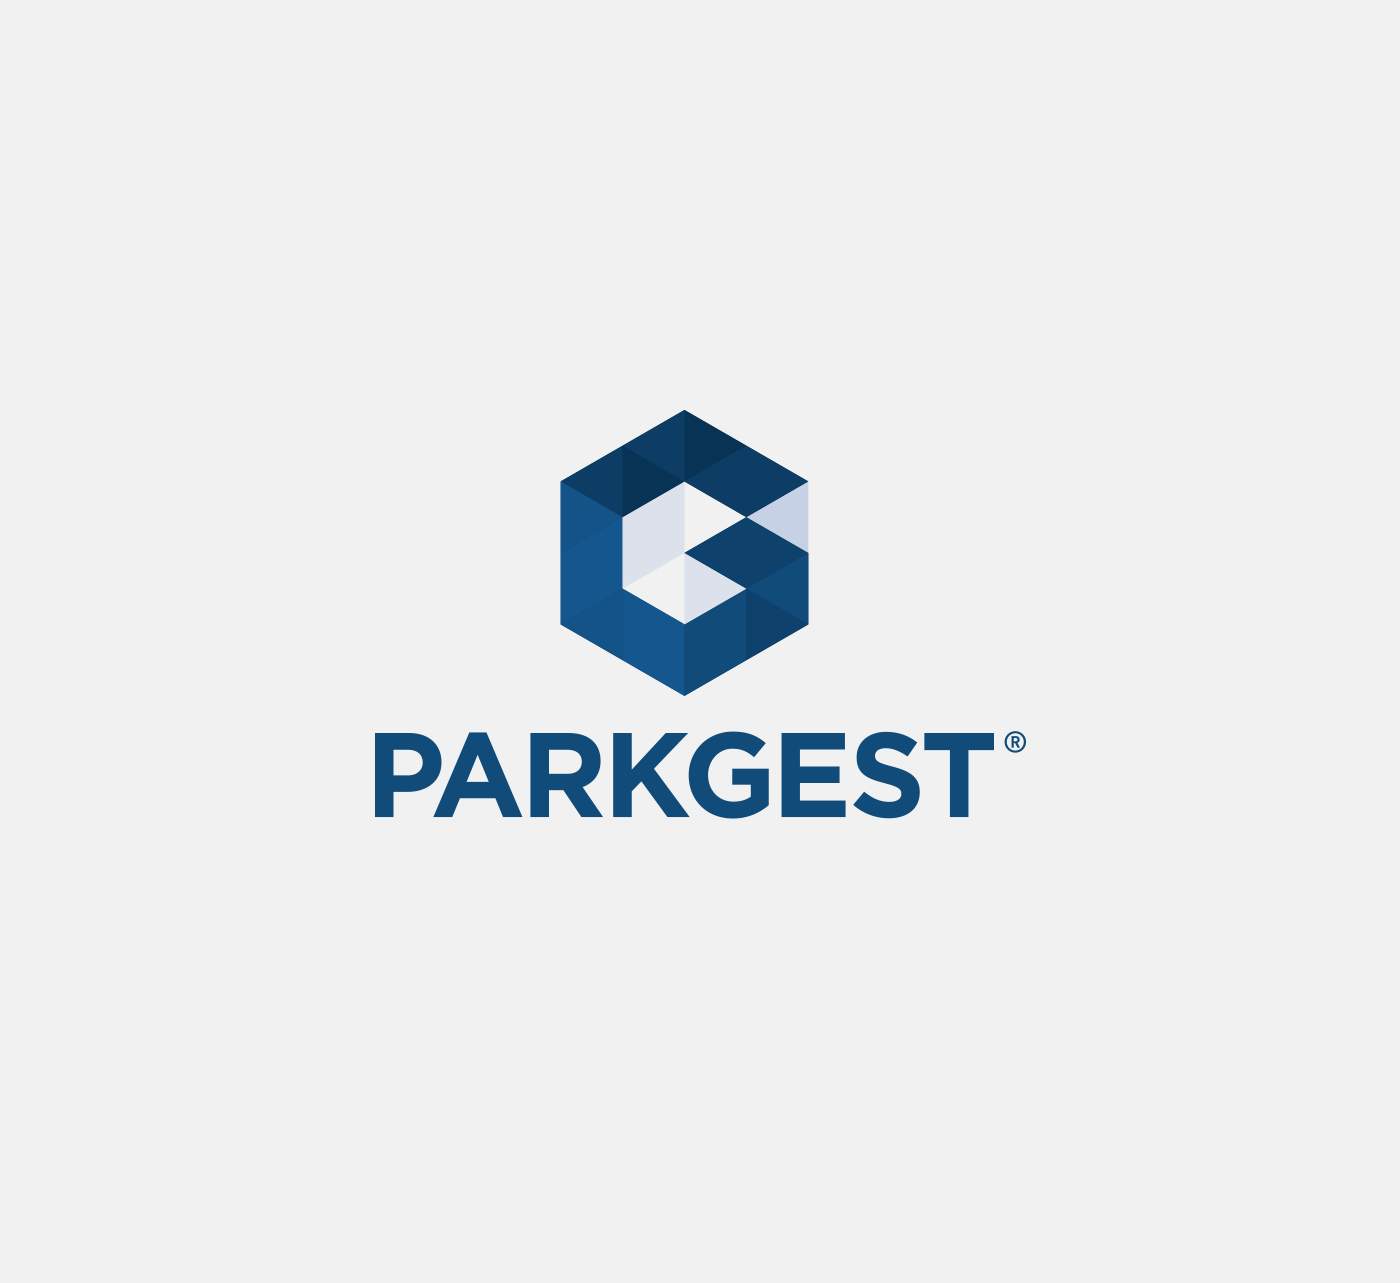 parkgest-geneva-graphicdesign-logo